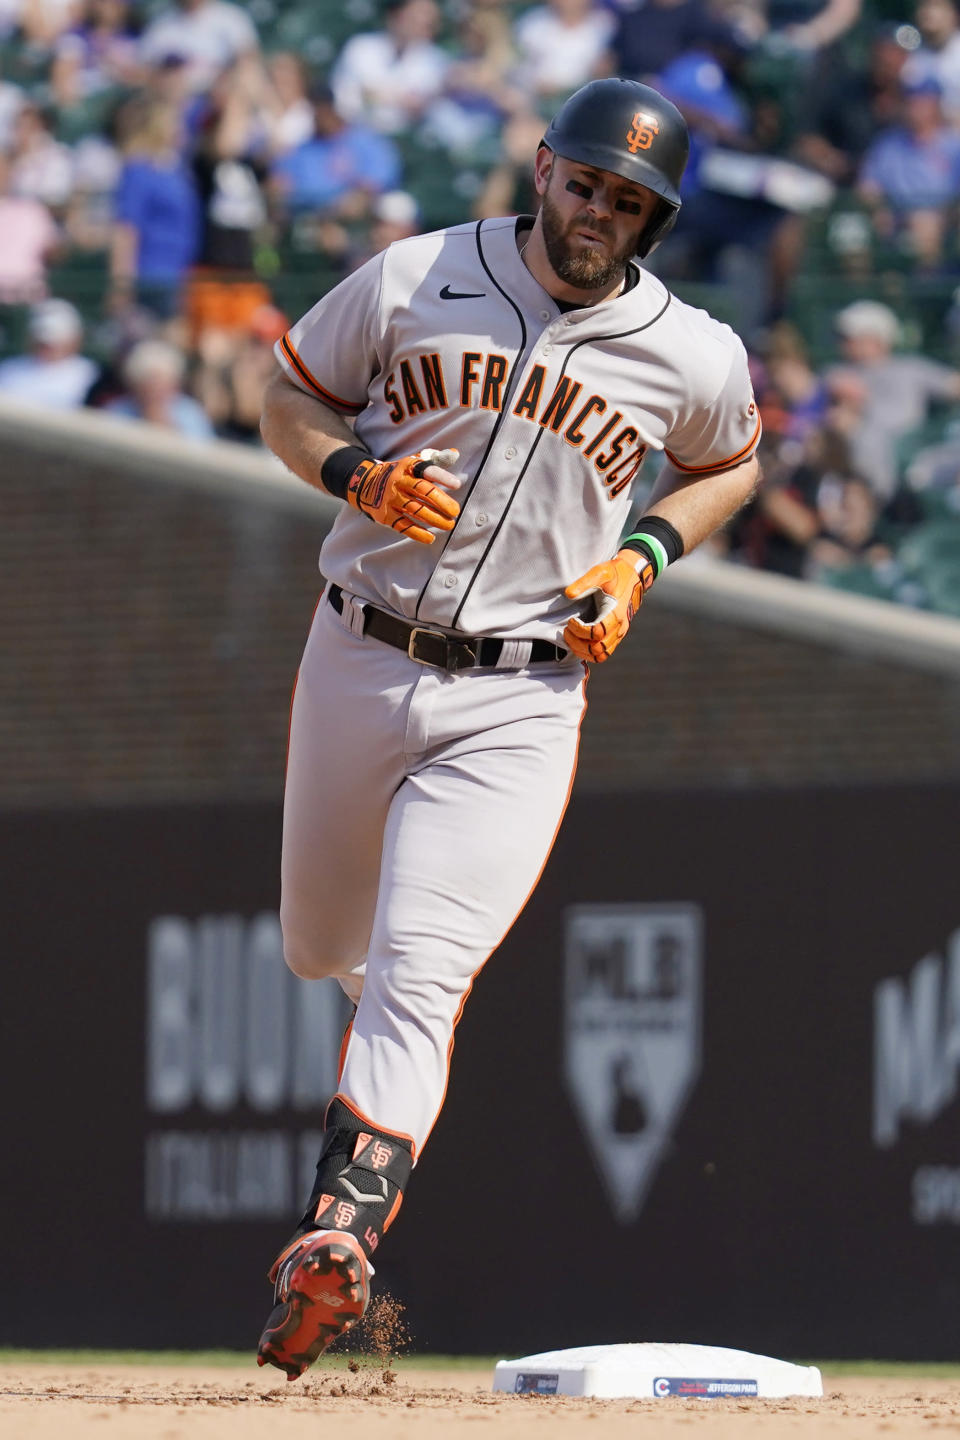 San Francisco Giants' Evan Longoria rounds the bases after hitting a two-run home run during the seventh inning of a baseball game against the Chicago Cubs in Chicago, Friday, Sept. 10, 2021. (AP Photo/Nam Y. Huh)